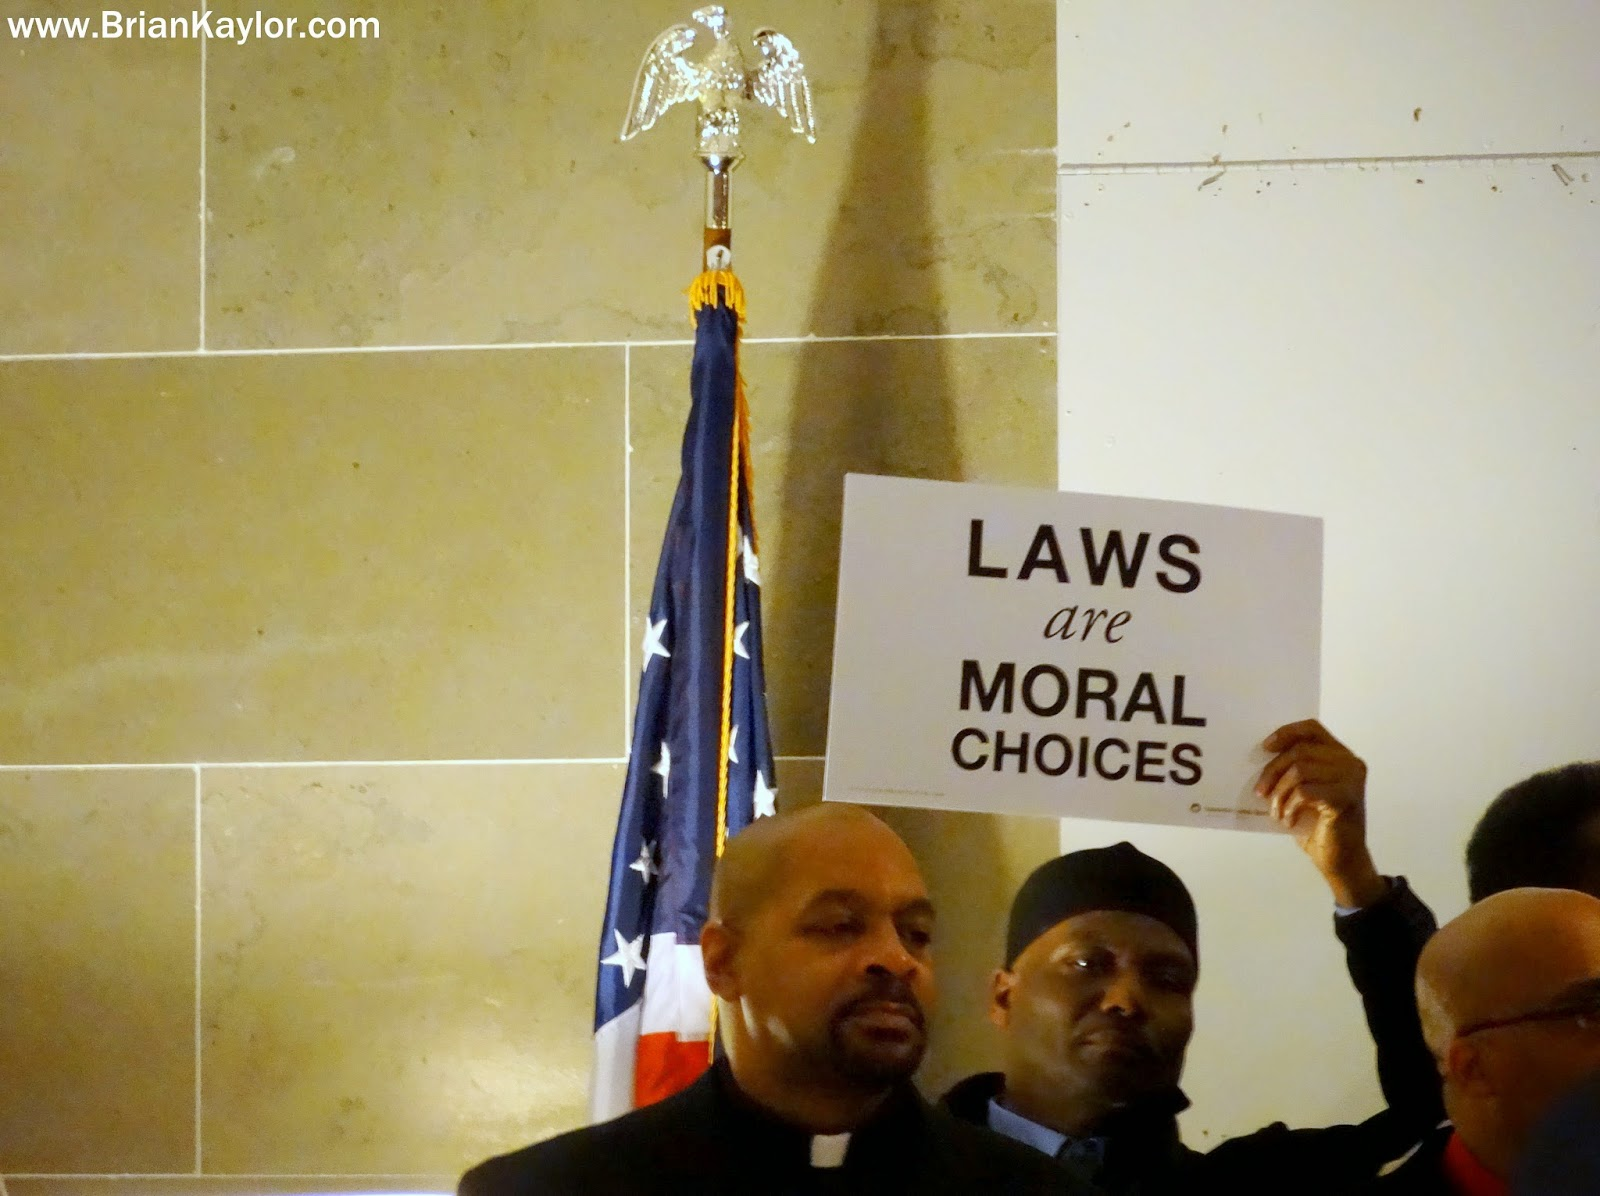 Laws are Moral Choices